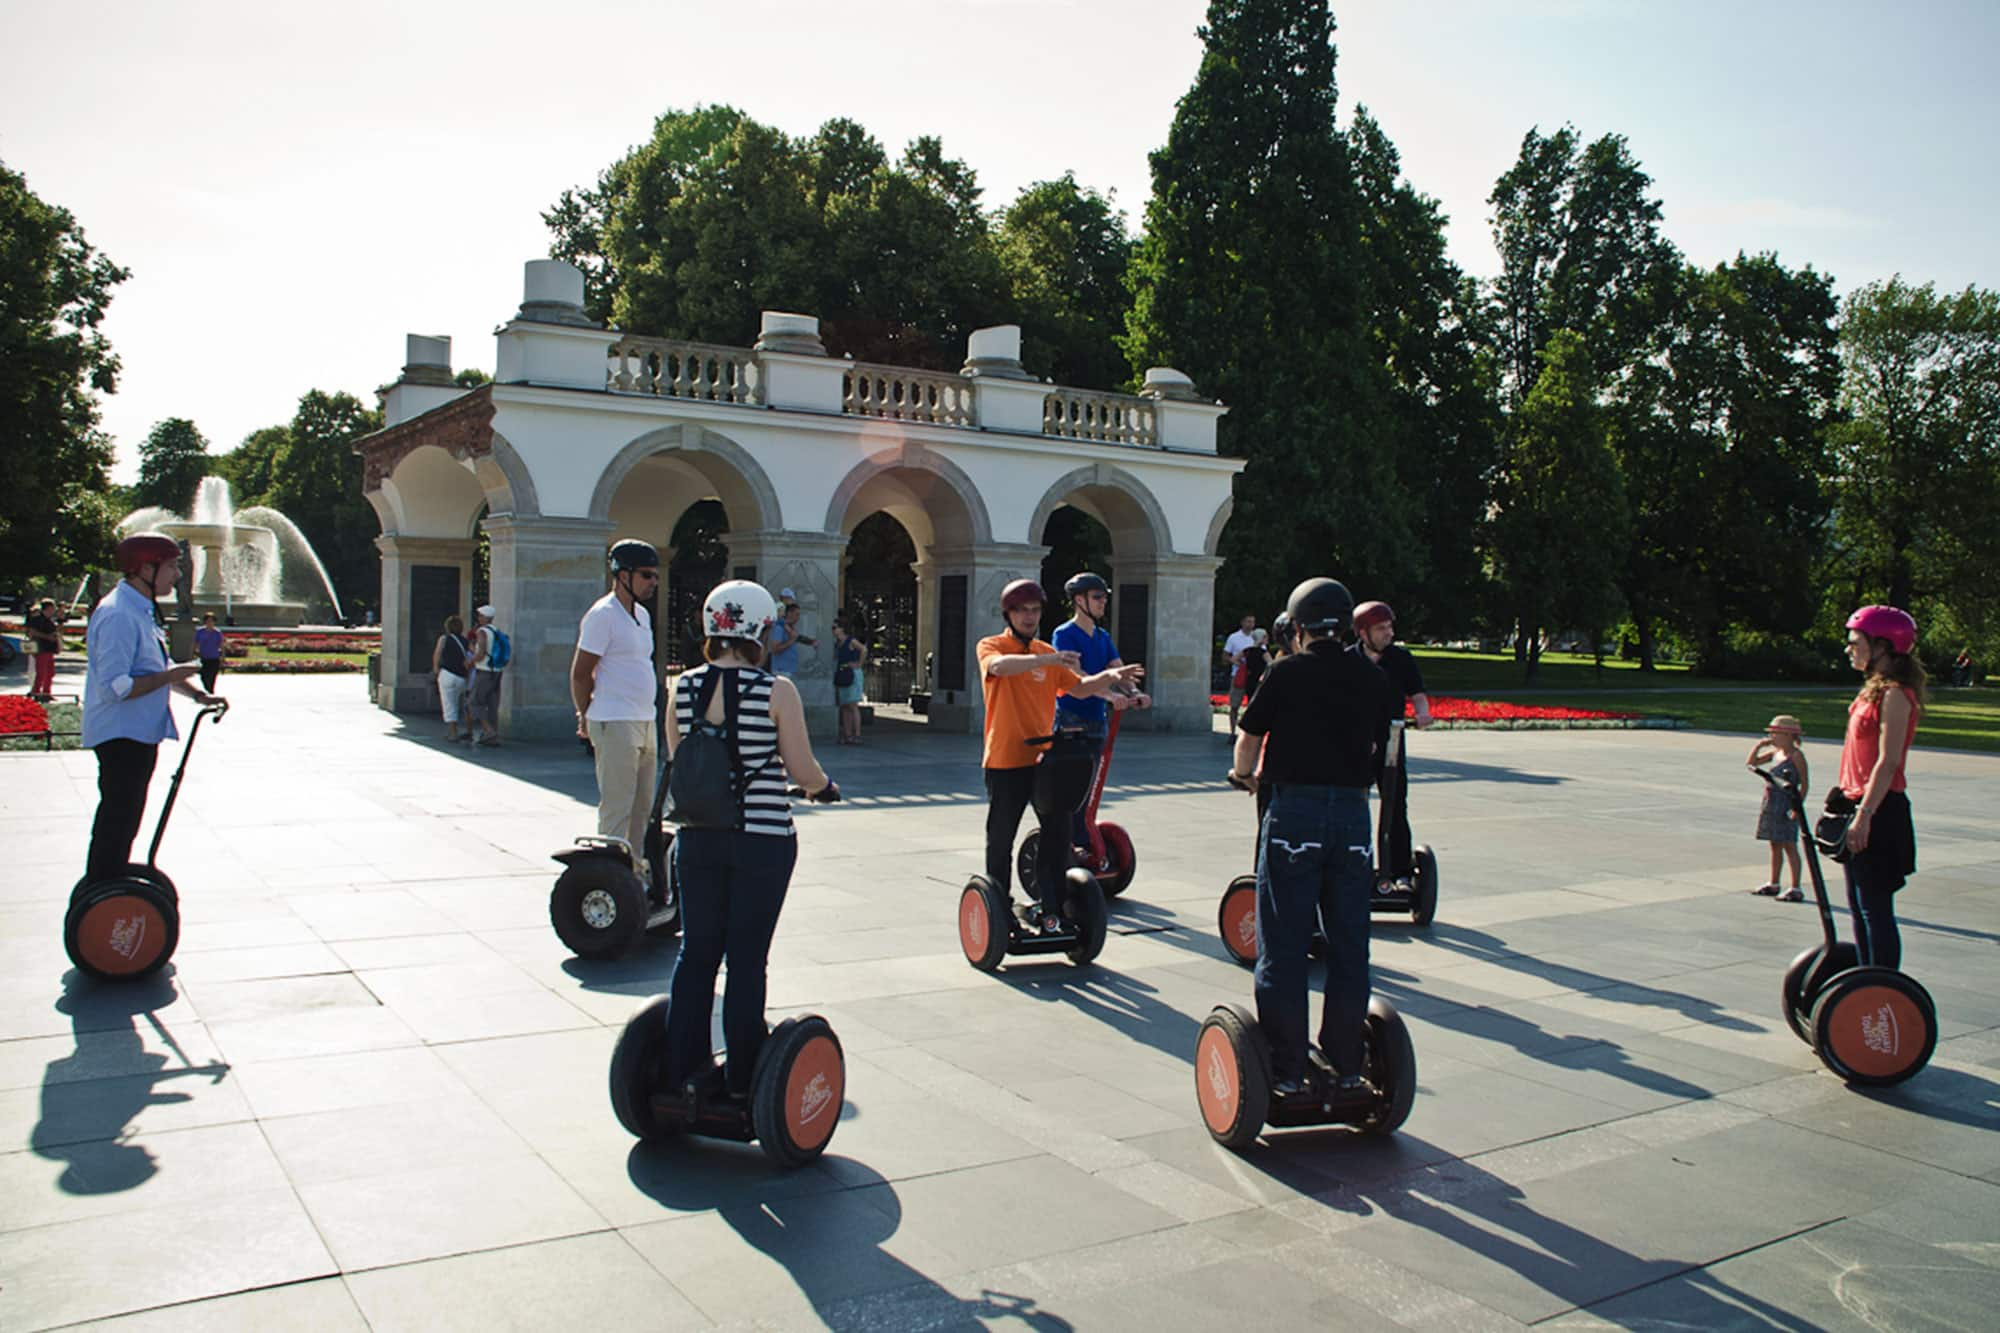 Group is gliding away at the Segway Tour from Pilsudski Square in Warsaw